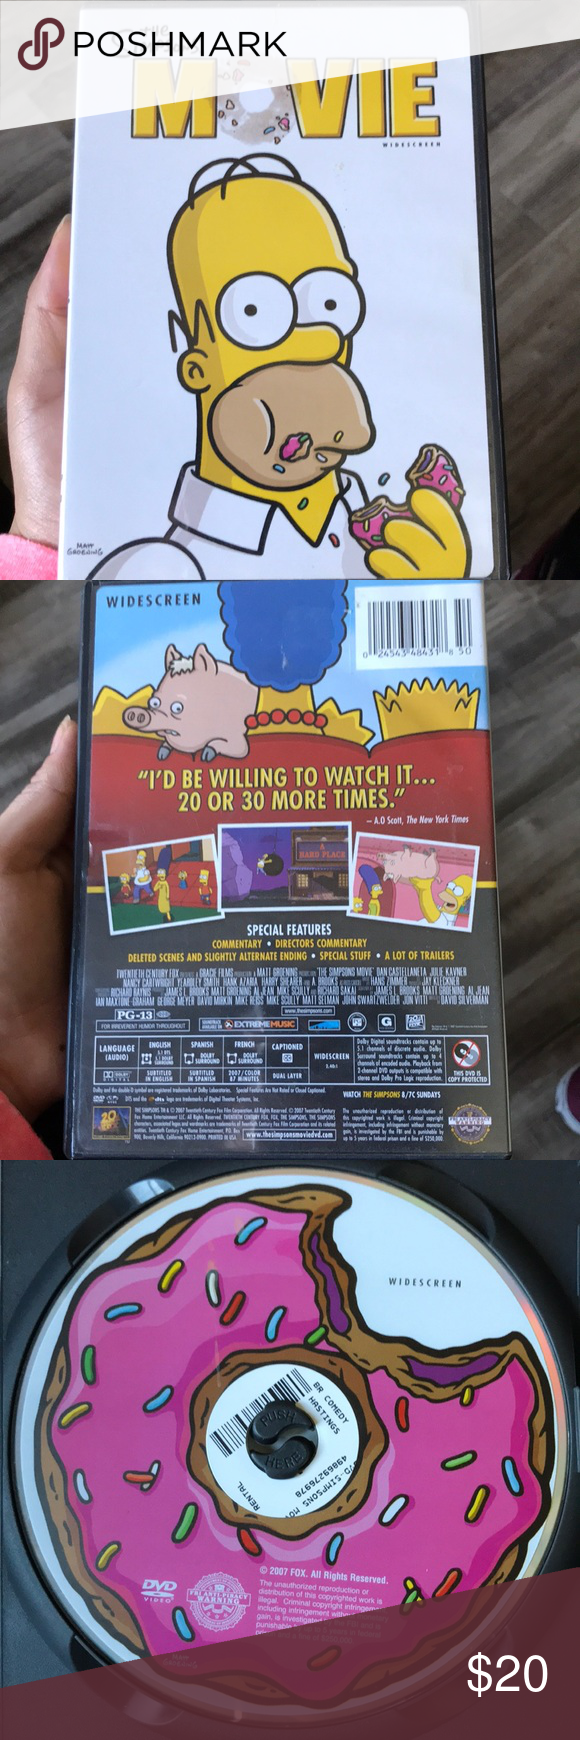 The Simpsons Movie Widescreen Great Movie Rated Pg 13 By Matt Groening The Simpsons Other The Simpsons Movie The Simpsons Simpson